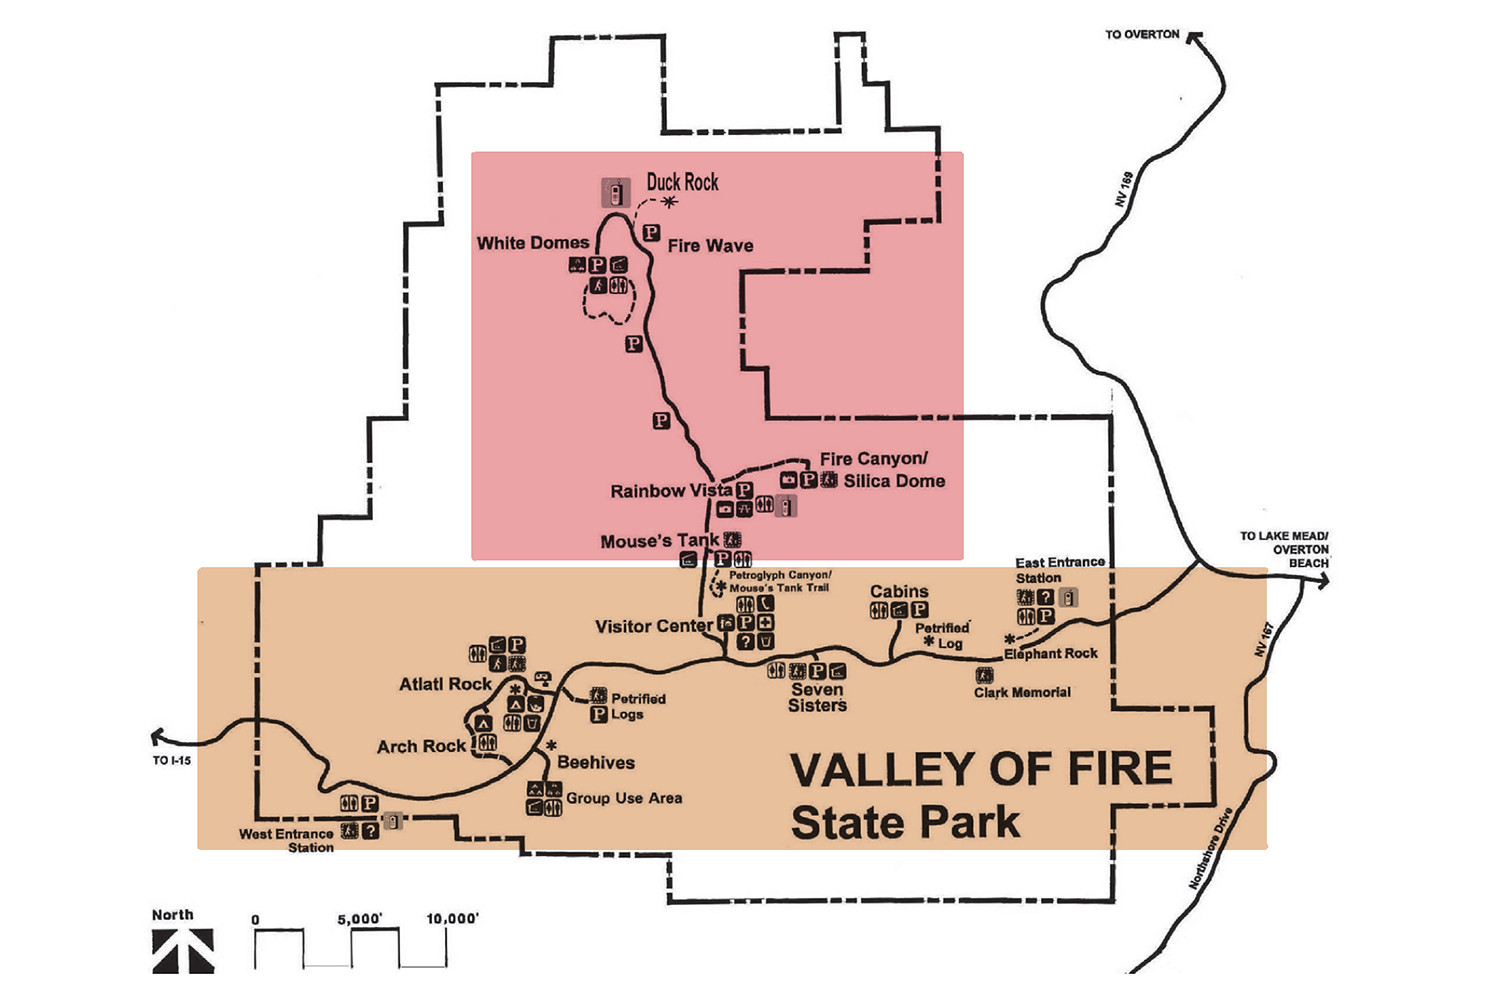 02valleyoffire-vegas-nevada-travel-map